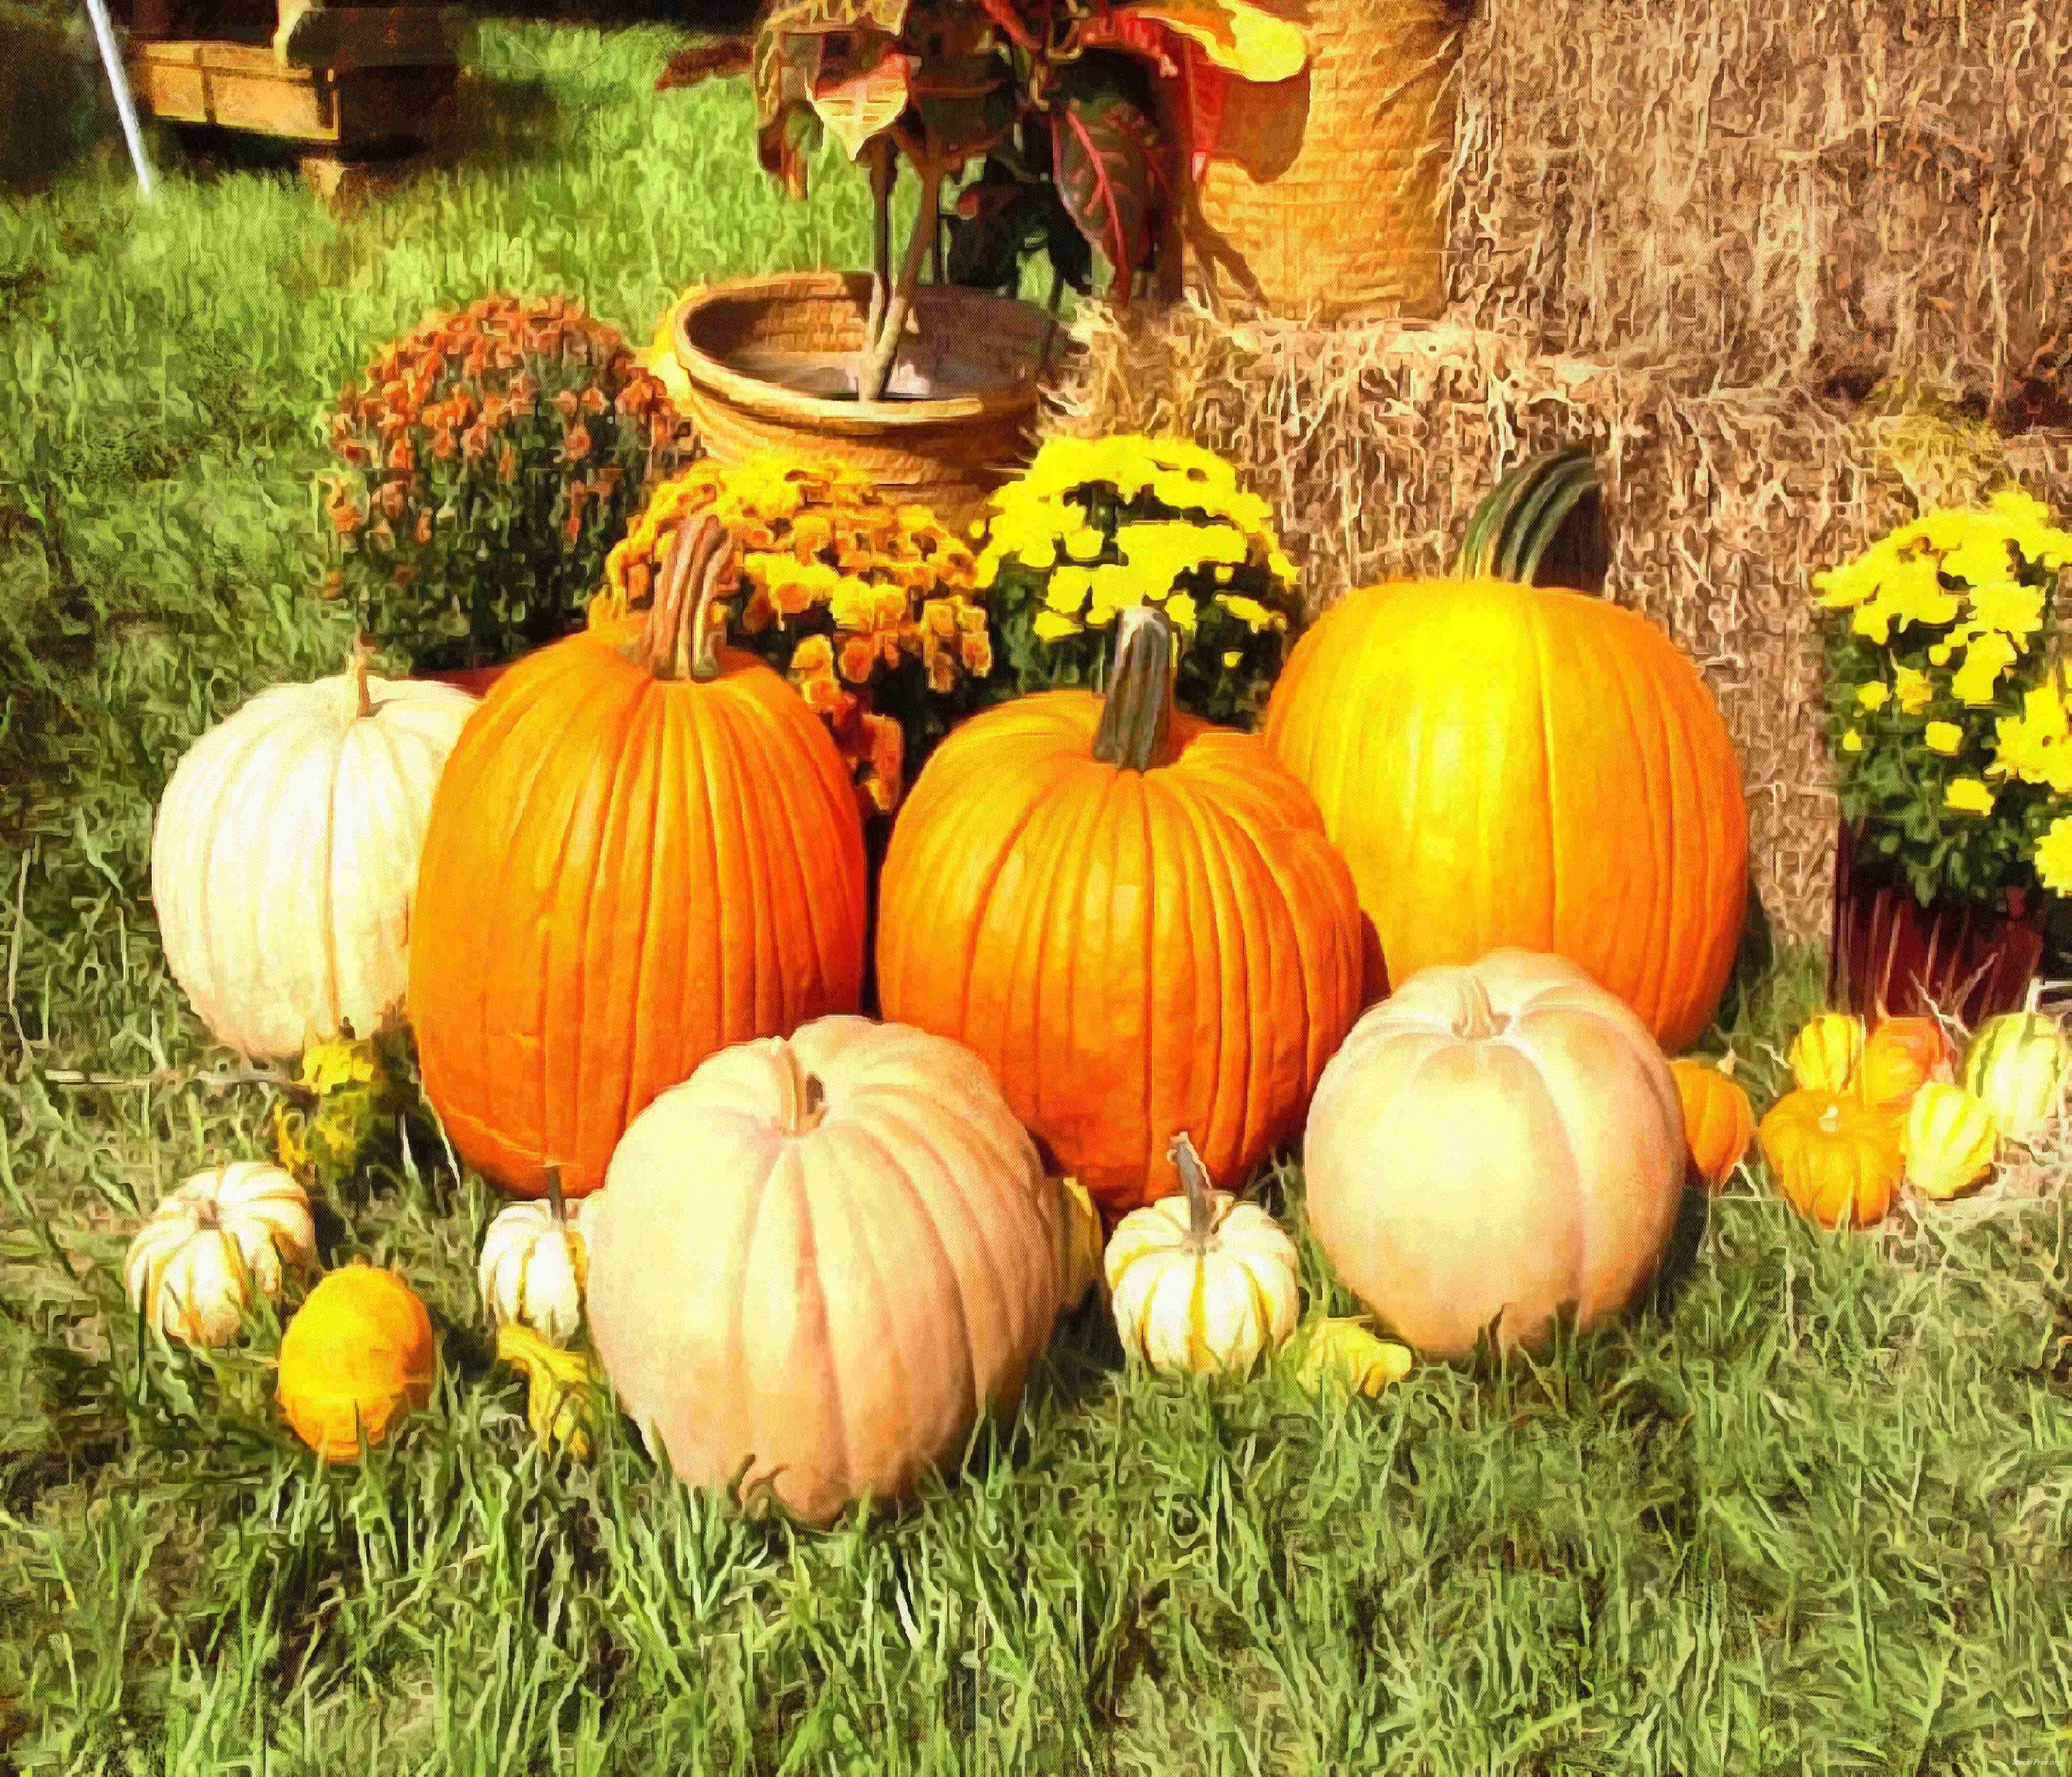 pumpkin, wheelbarrow, cart, trade, tray, stall, holiday, lots of pumpkins, garden, spooky, halloween -  stock free photos, public domain images, download free images, free stock images, public domain